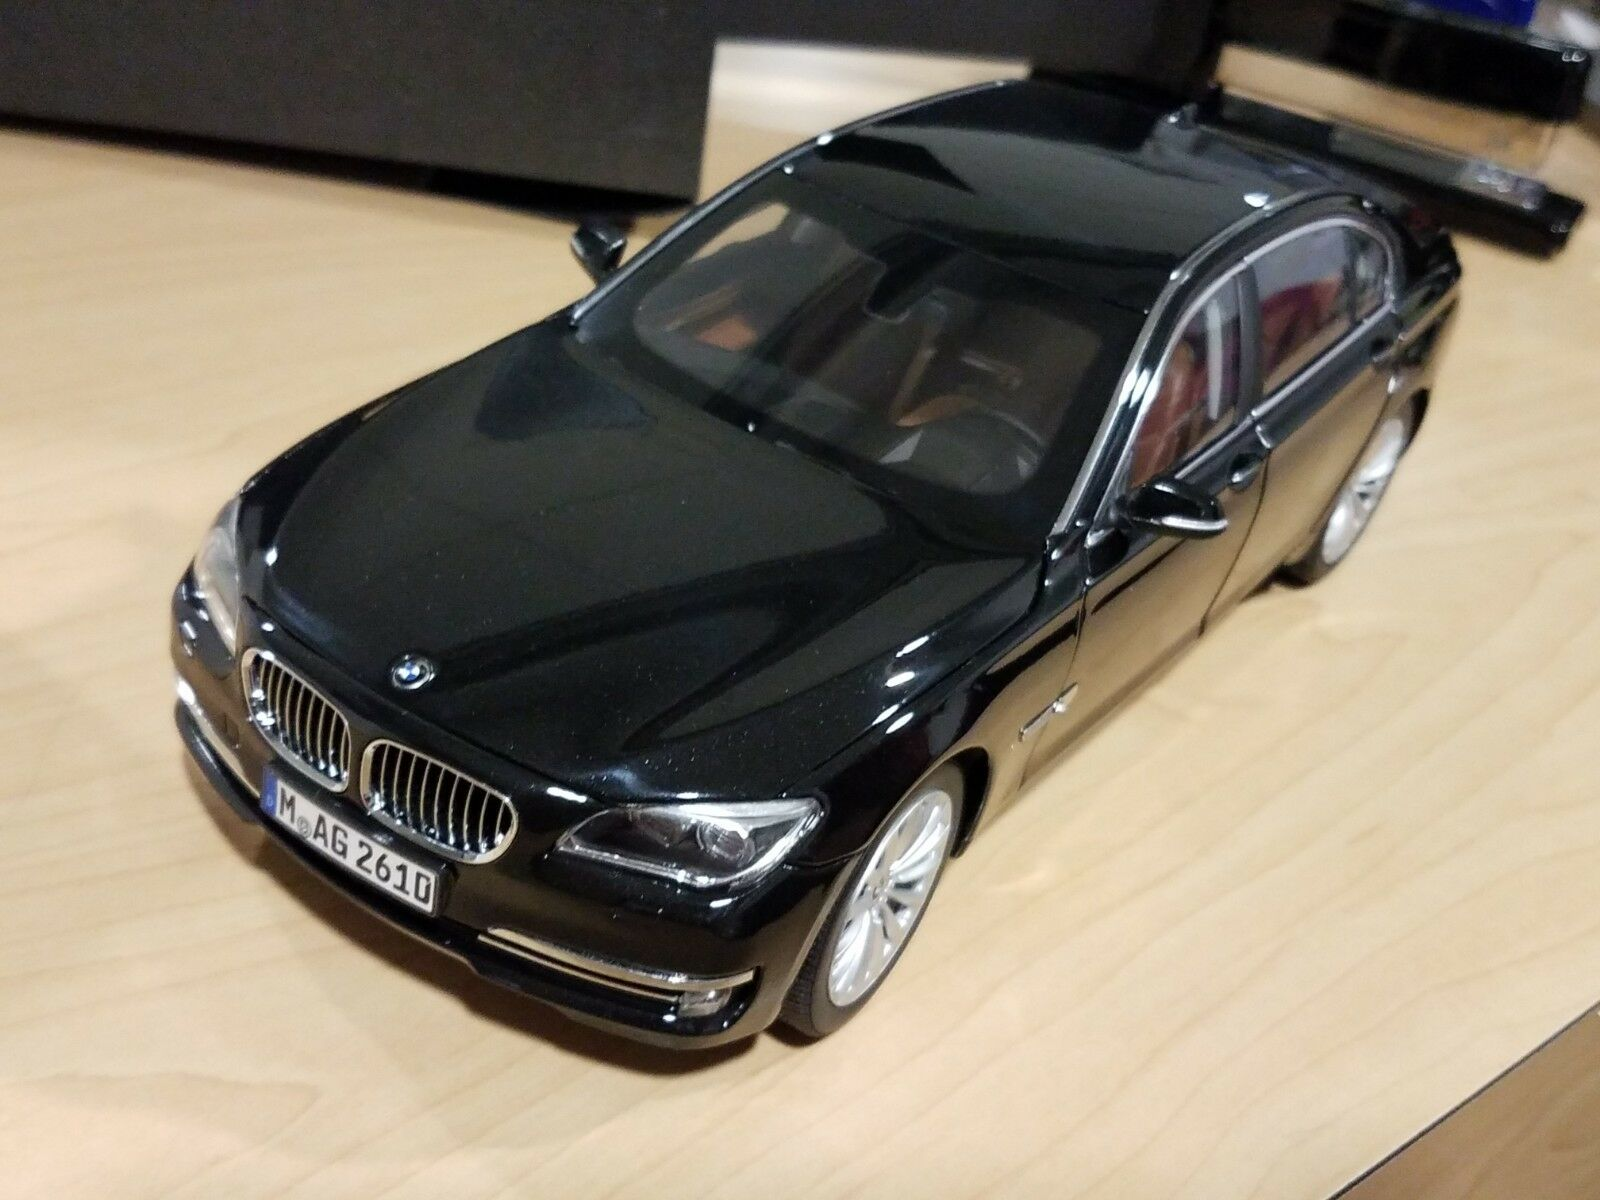 Bmw F02 750Li 1 18 scale model miniature voiture de collection Noir 80432360450